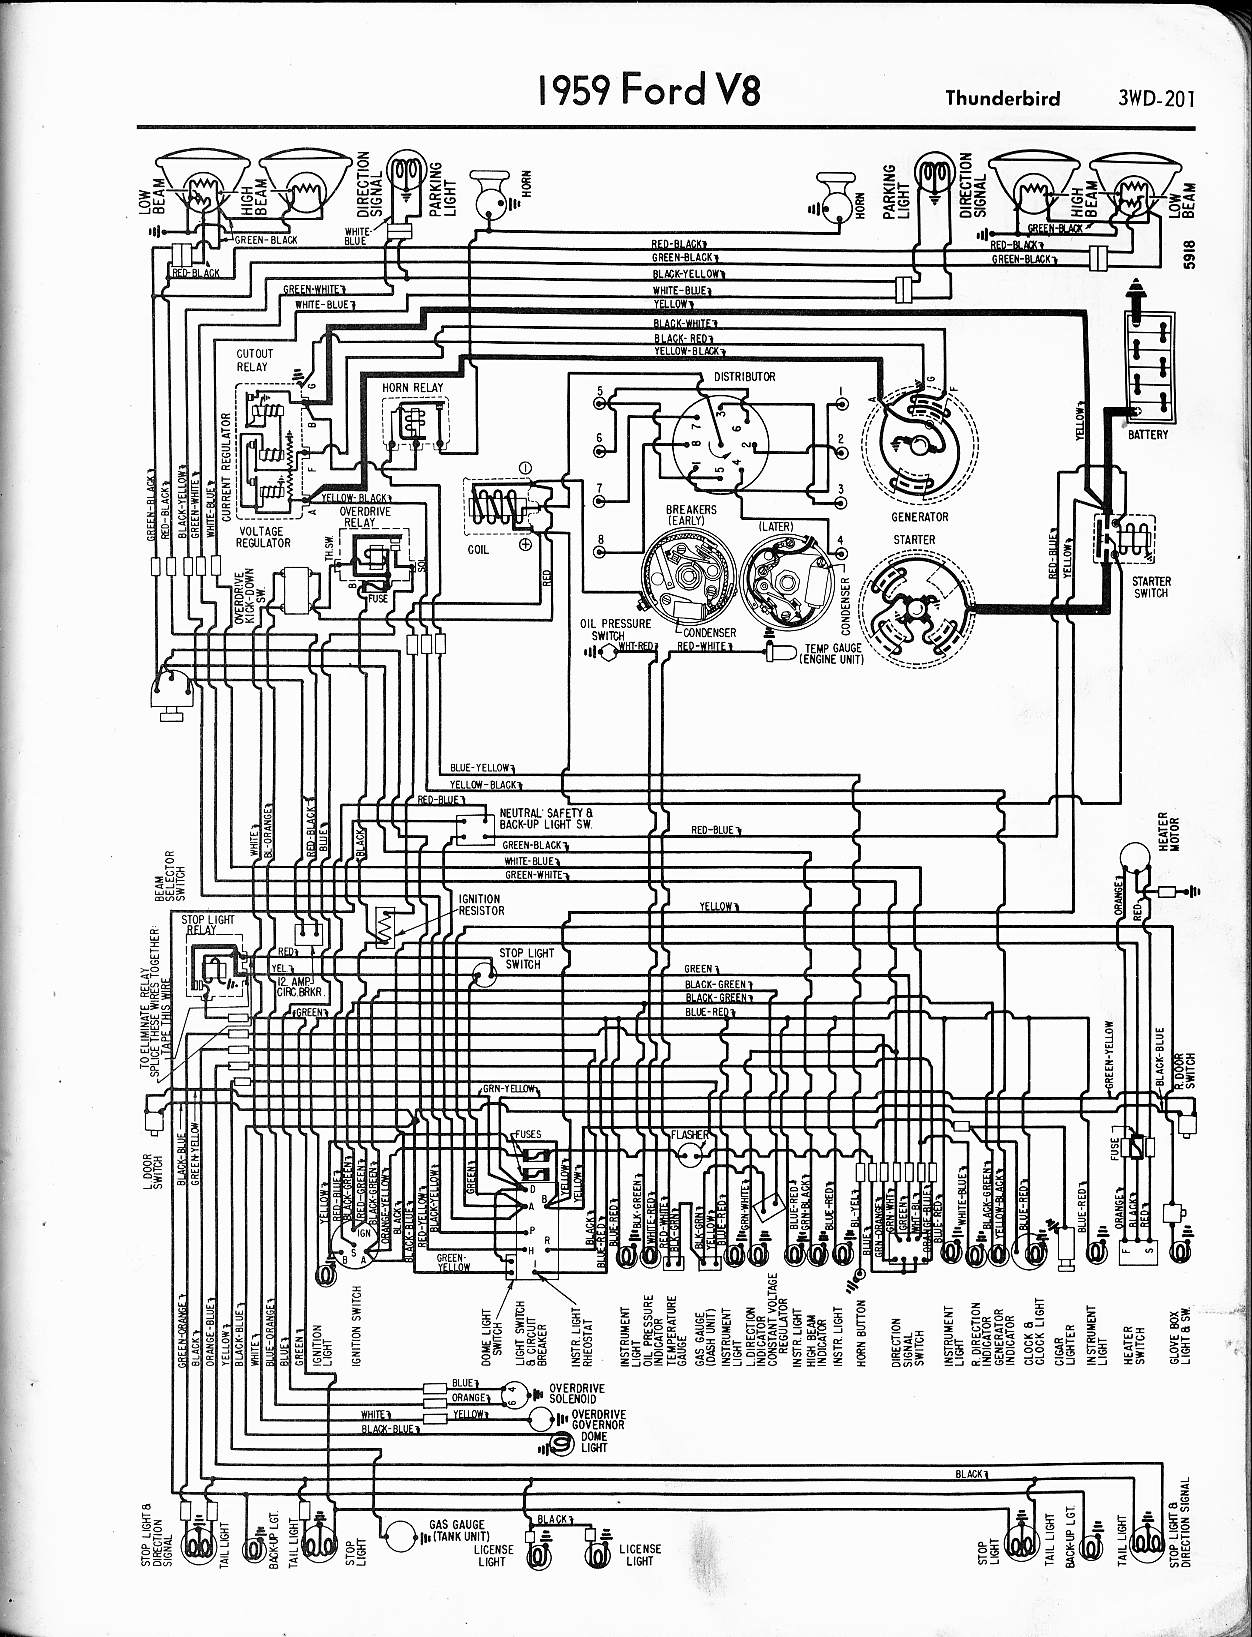 MWire5765 201 57 65 ford wiring diagrams wiring diagram 1992 ford e150 club wagon at gsmportal.co